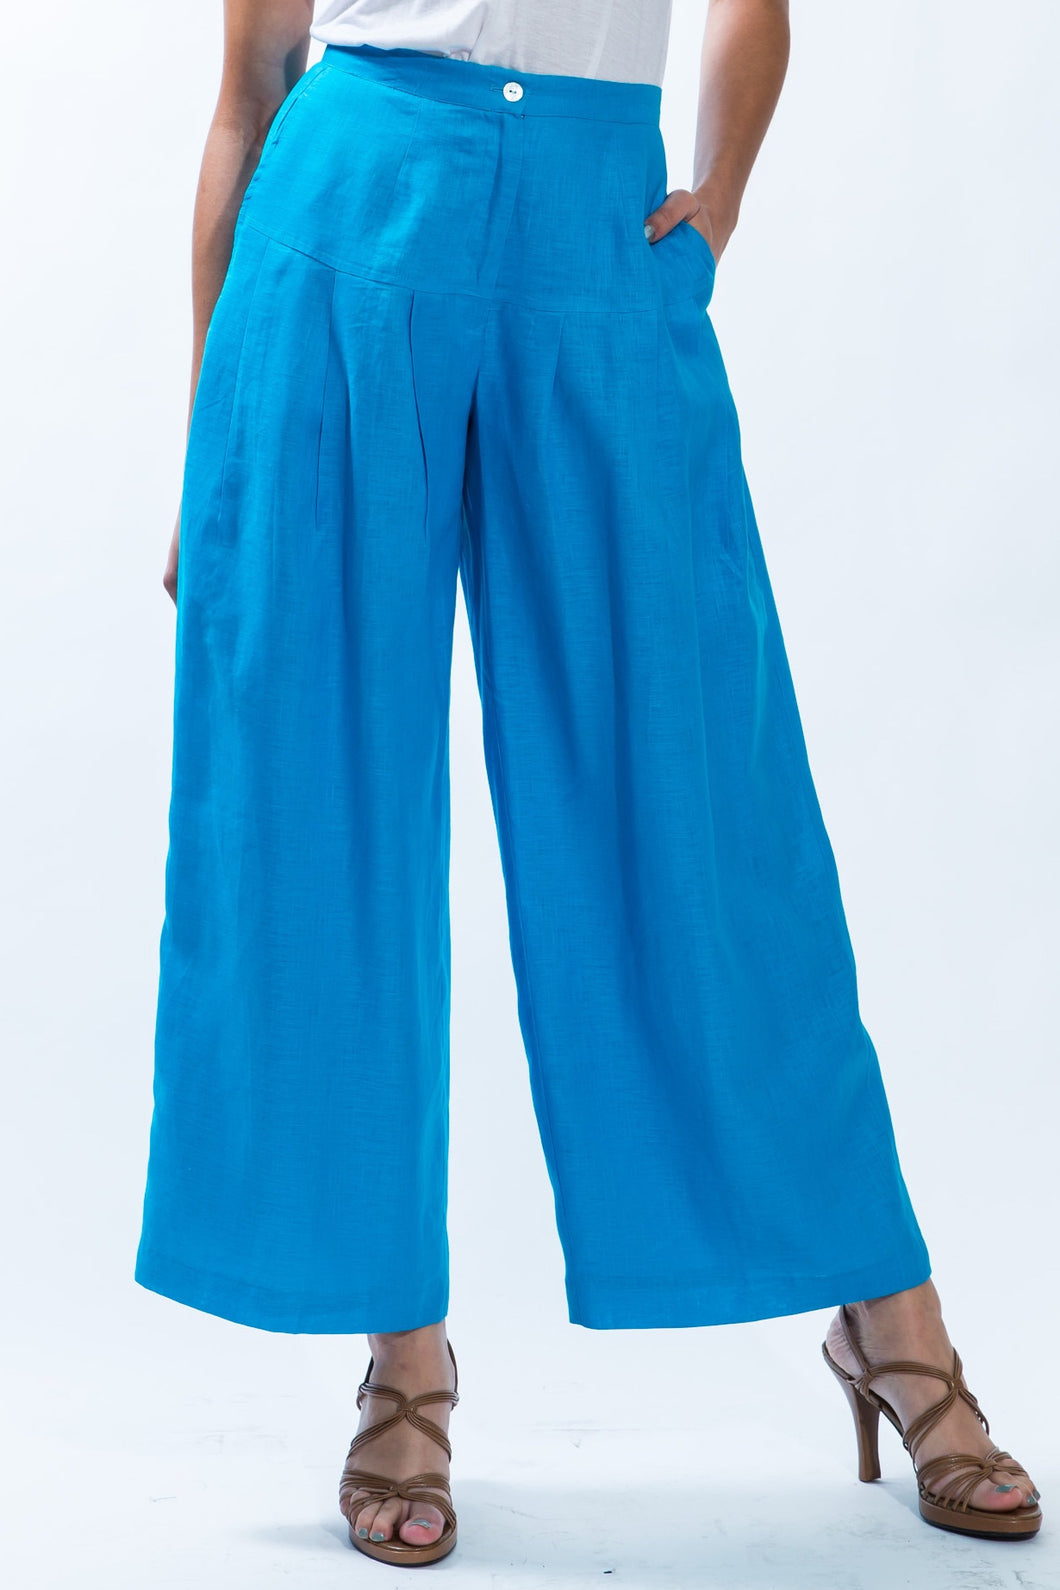 FLARED LINEN PANTS STYLE 1820